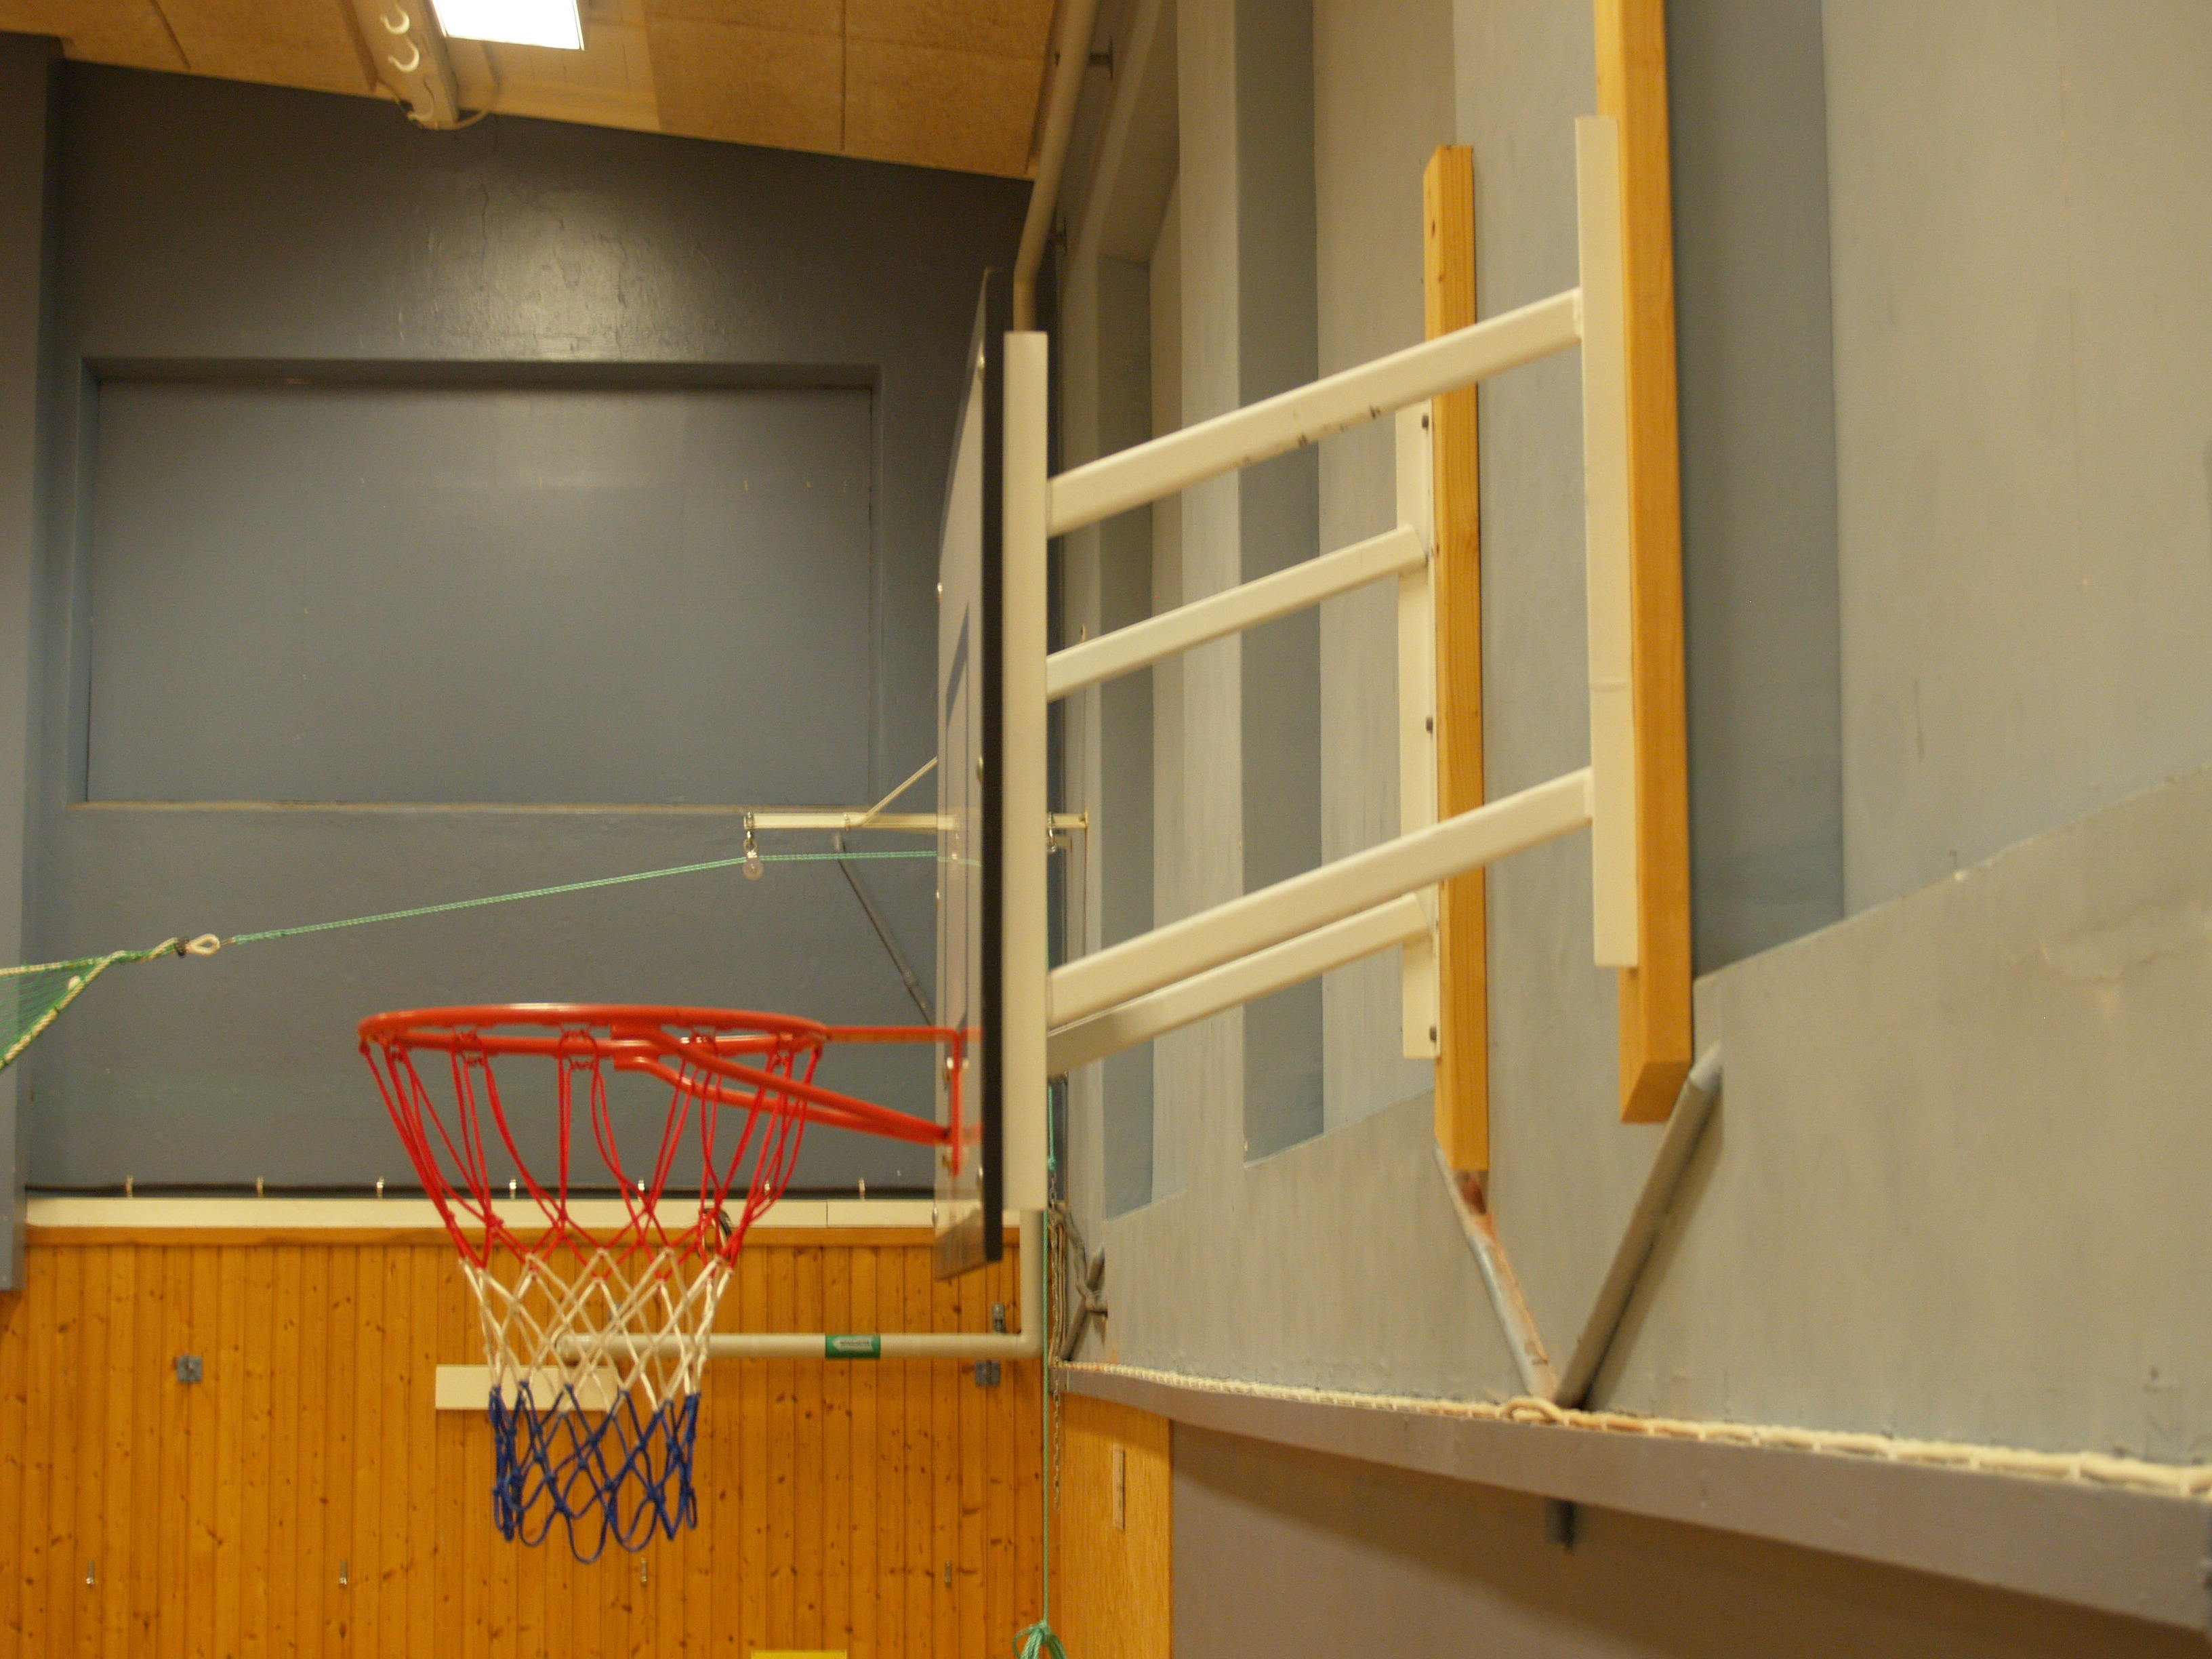 Side View of Fixed Projection Practice Basketball Goal by Unisport